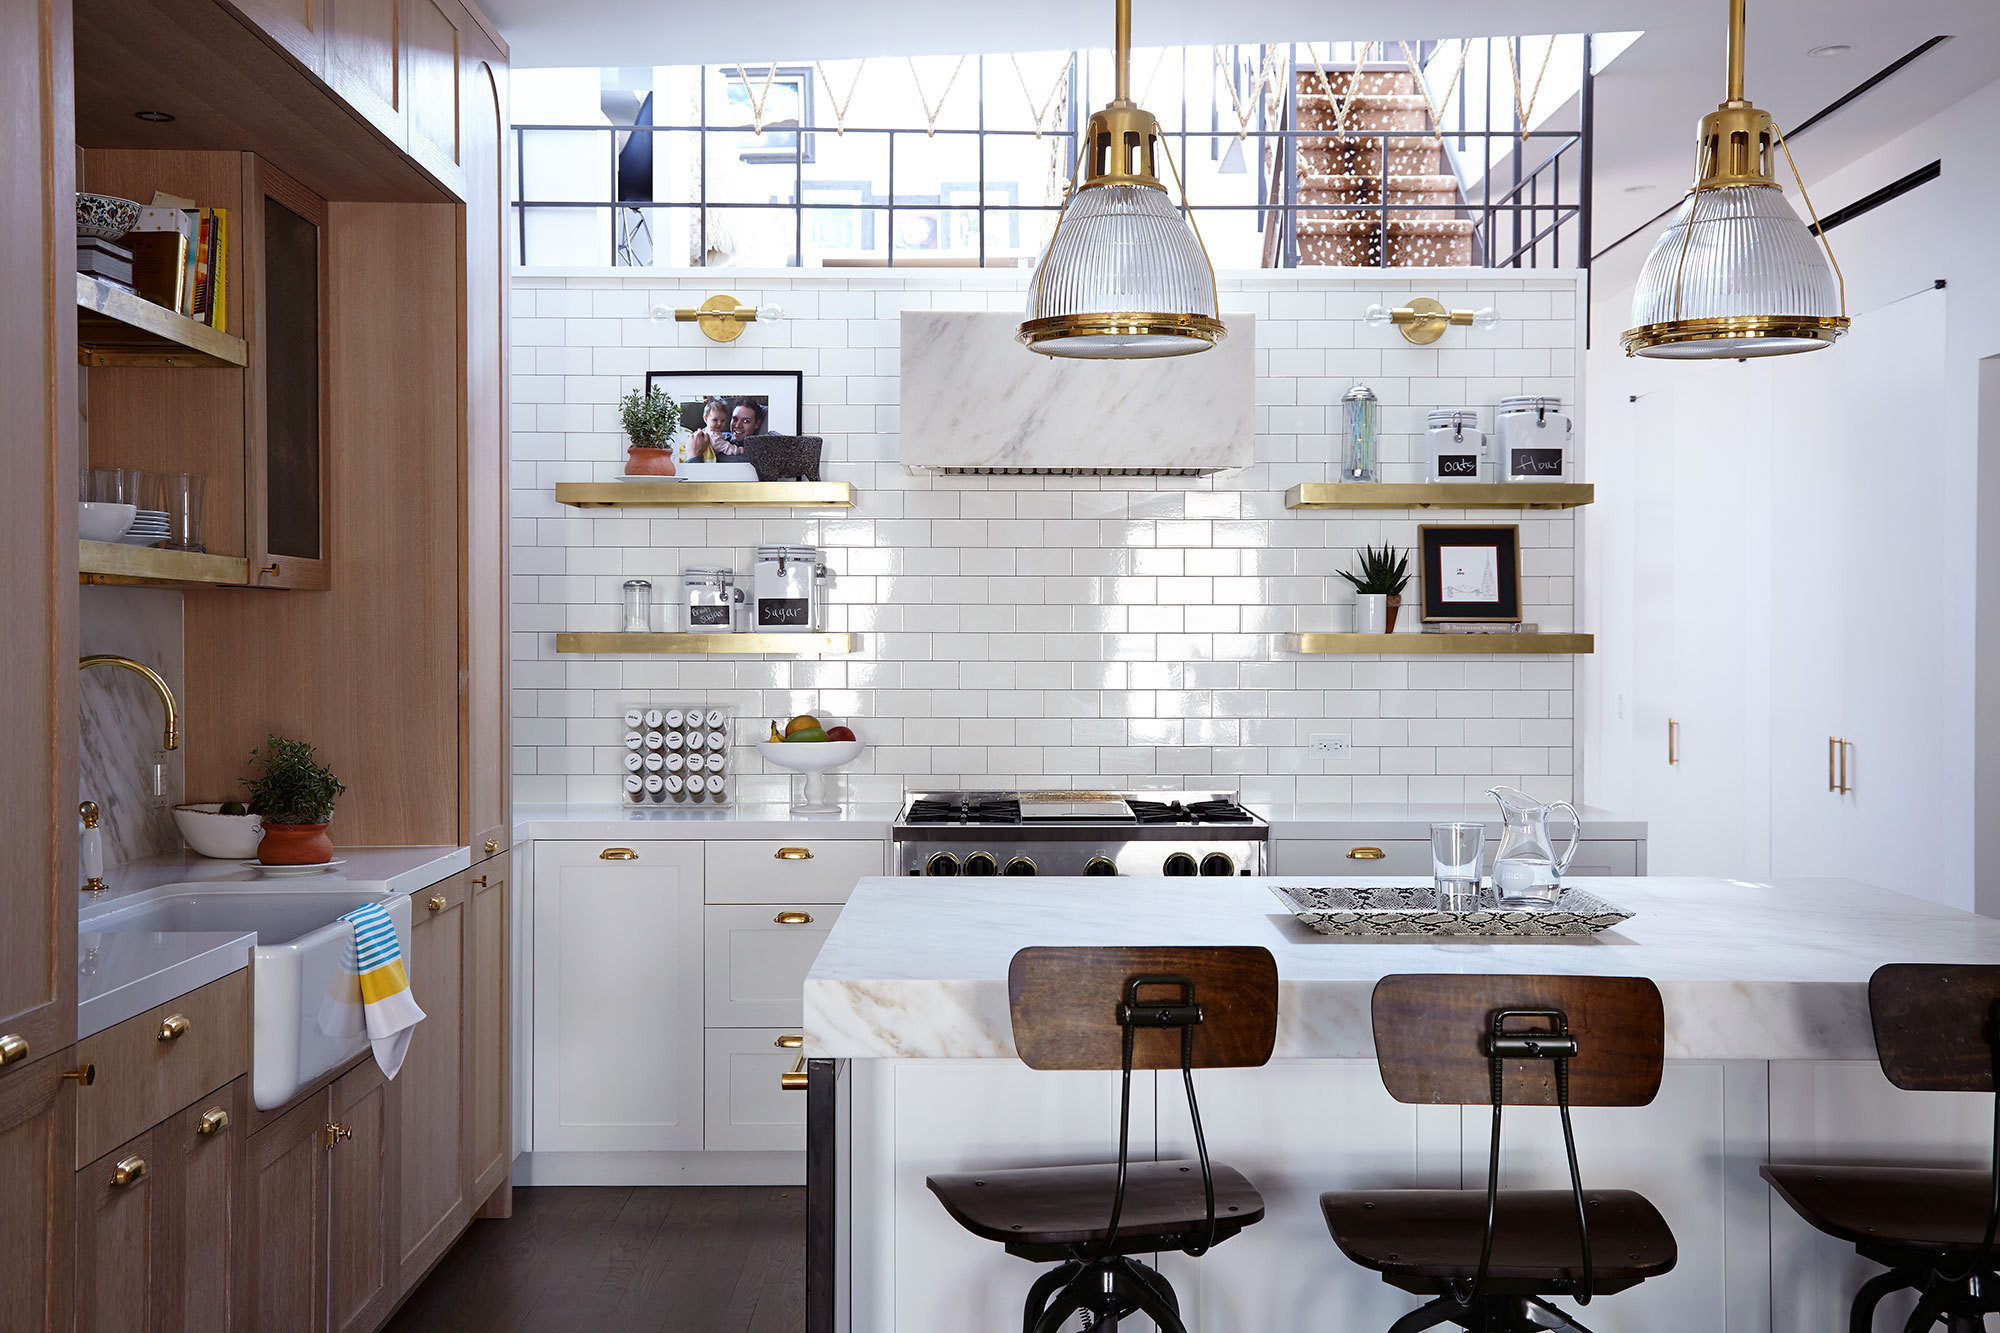 Ikea Küche 11.11 Say Goodbye To Your Backsplash Tiled Kitchen Walls Are